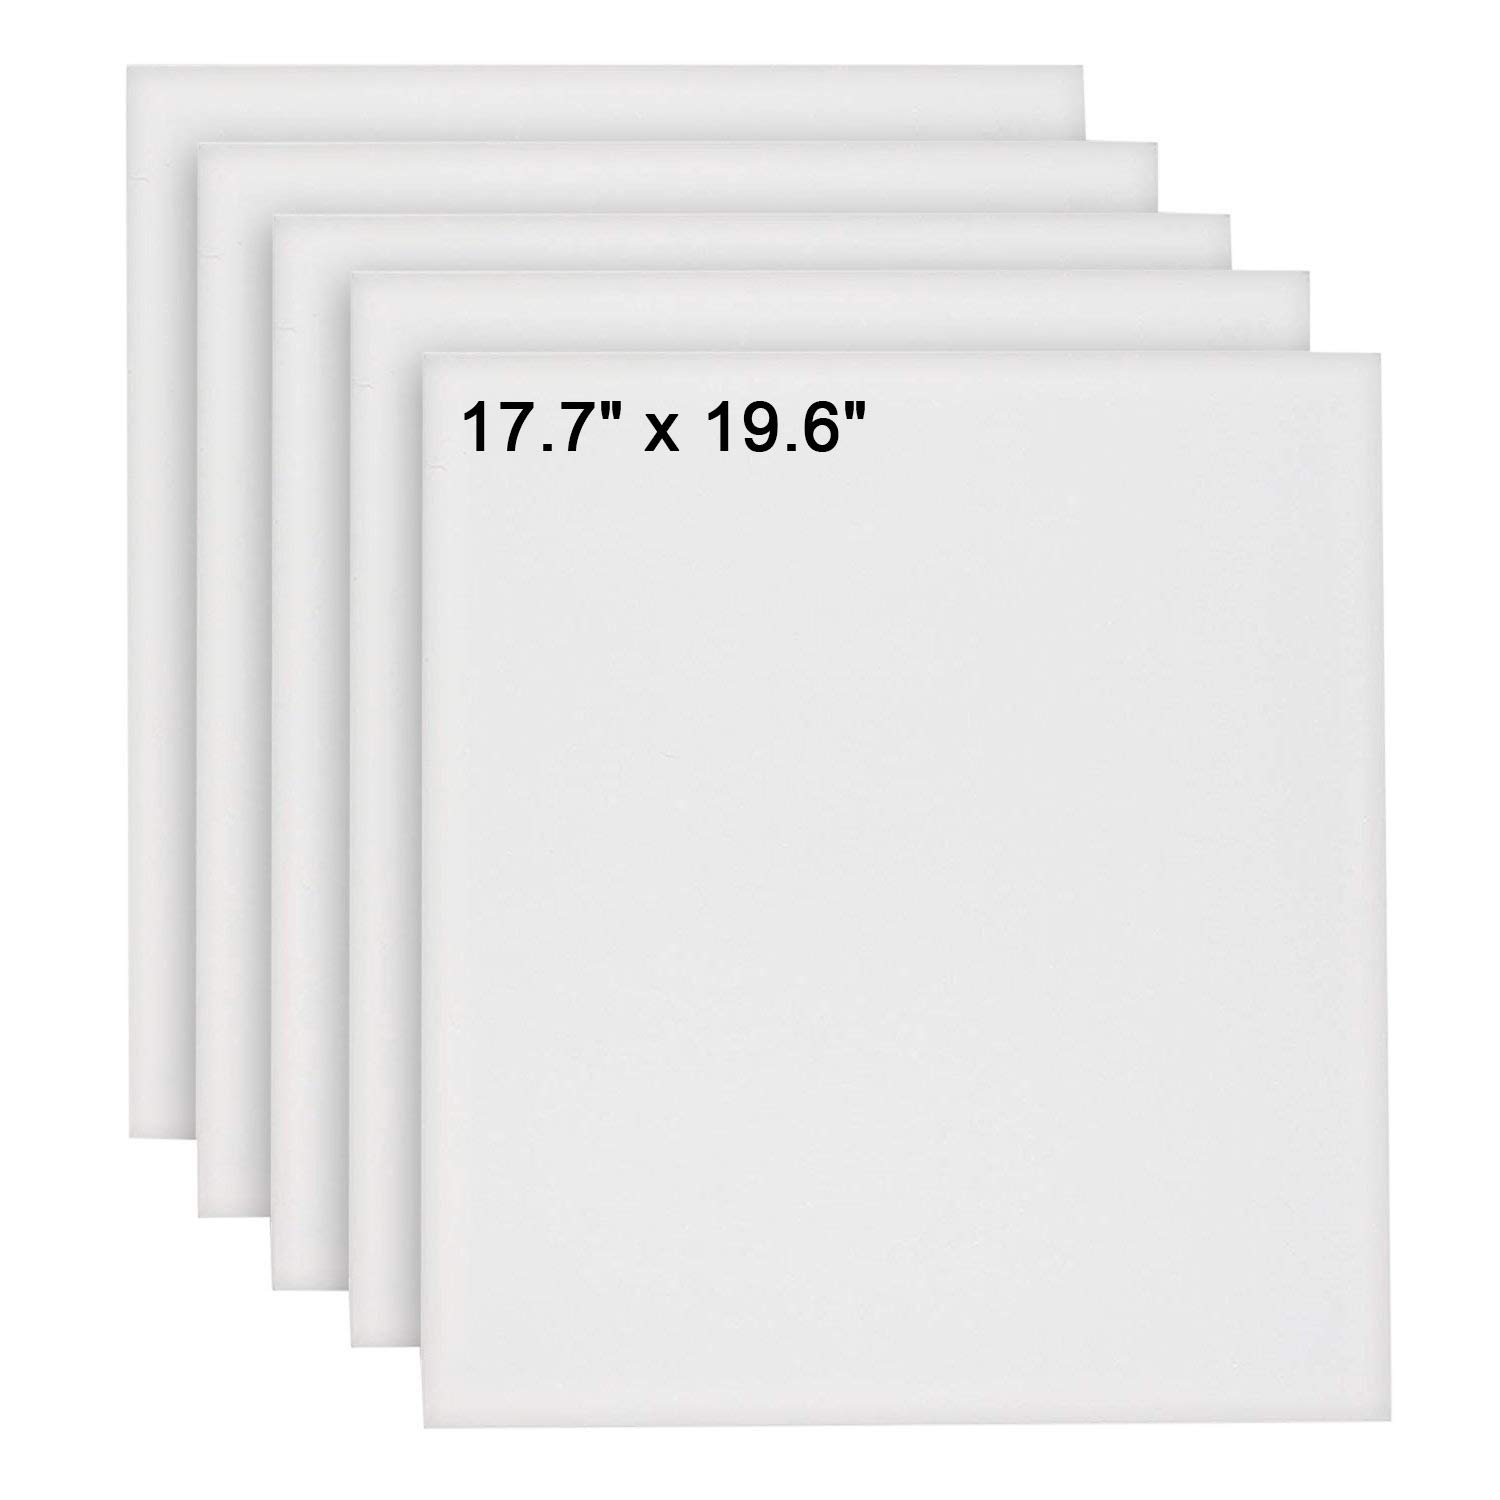 KURTZY 5 pcs Canvas Board - Blank Canvas Set - Artist Canvas Frame - Canvas Panel - Acrylic Painting Board with Pre Stretched Canvas for Artwork, Water Painting board - 17.7